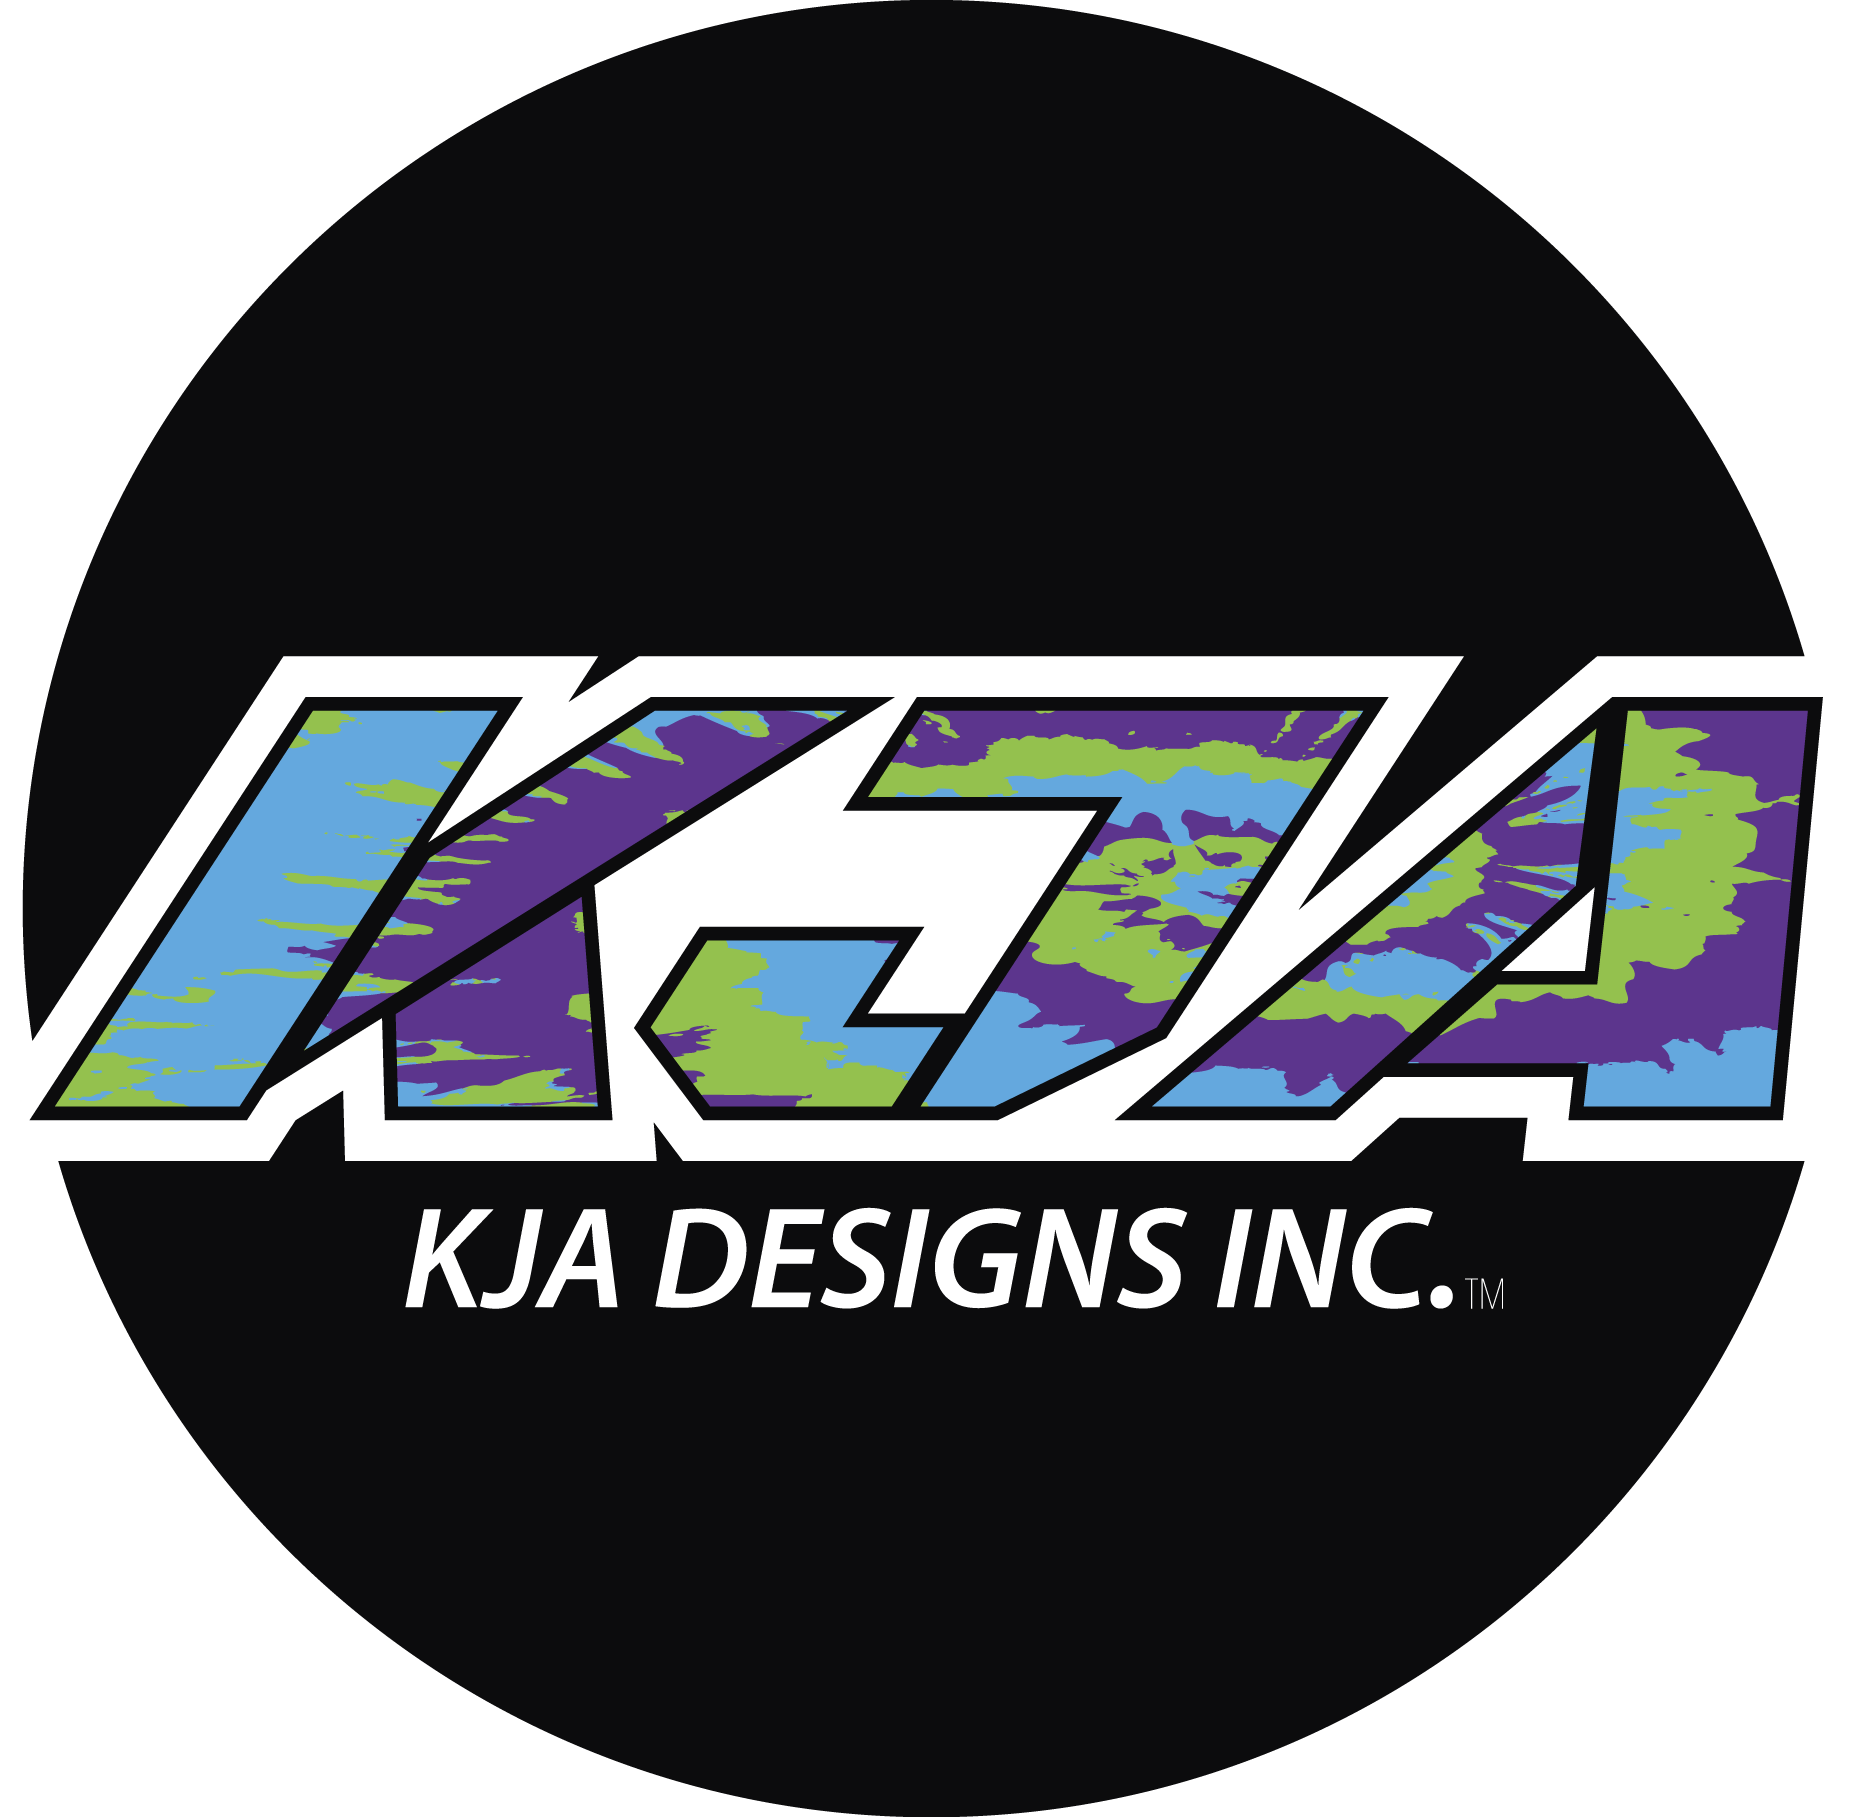 KJA Designs Inc.™ 3B on site